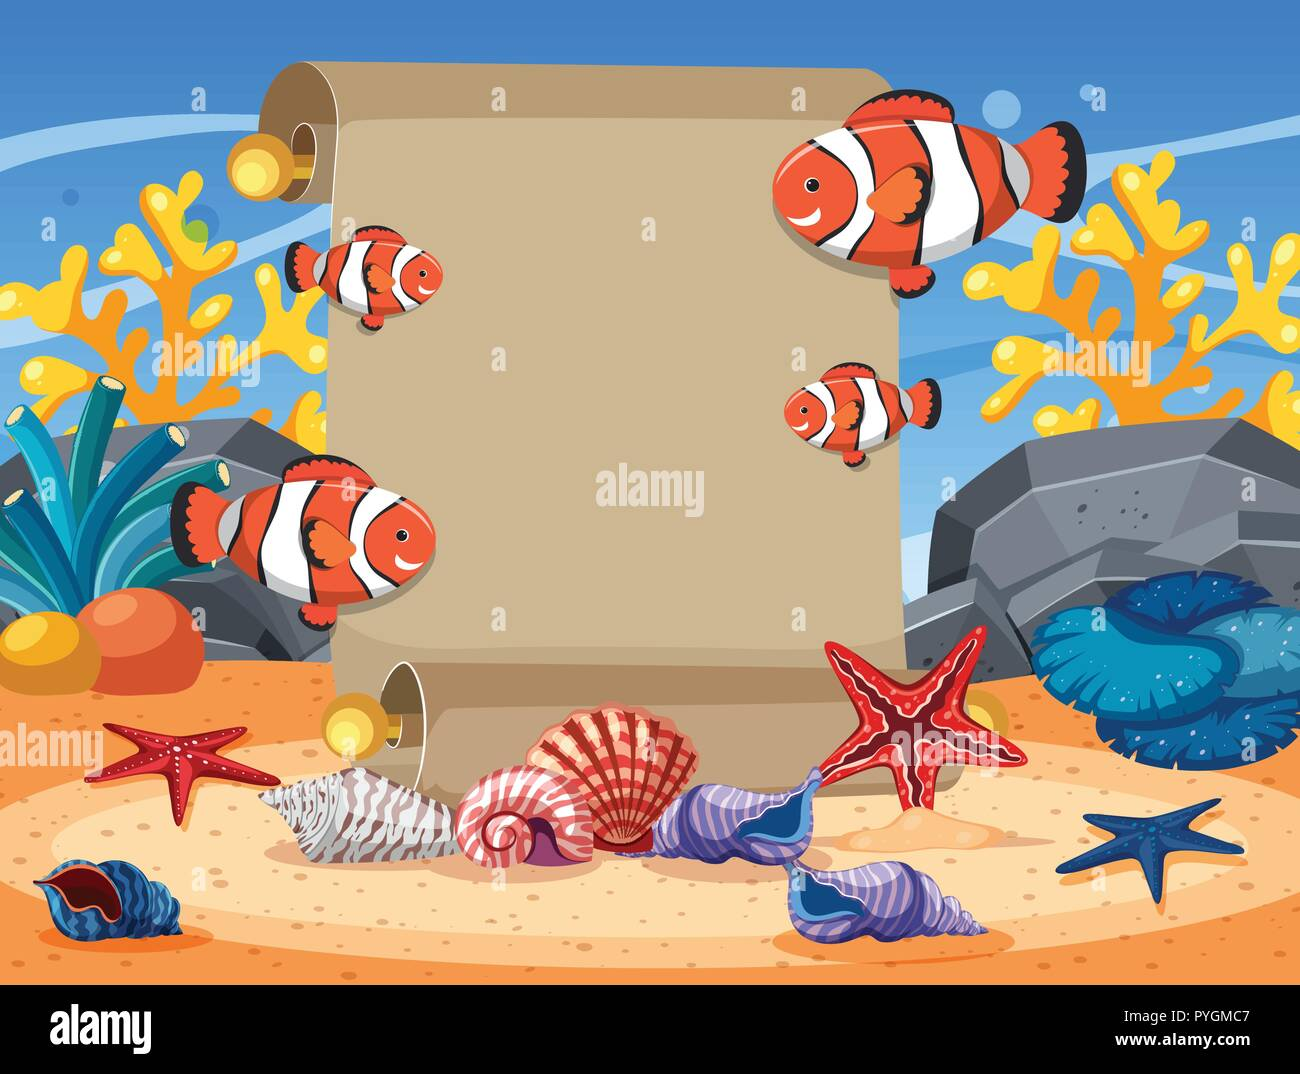 border template with clownfish and starfish underwater illustration